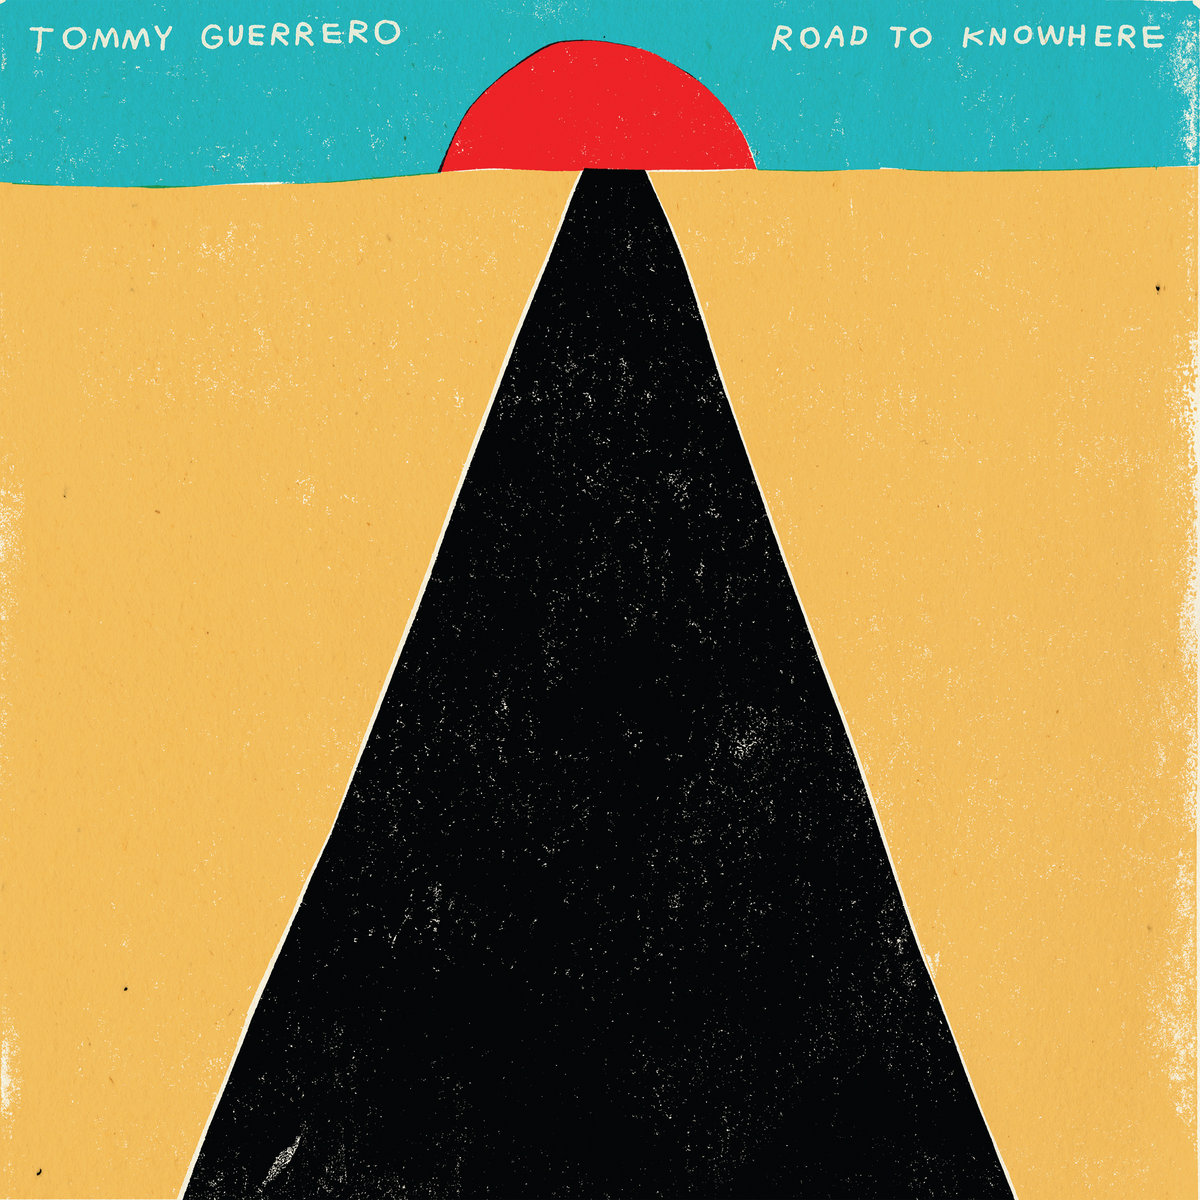 tommy guerrero road to nowhere bandcamp